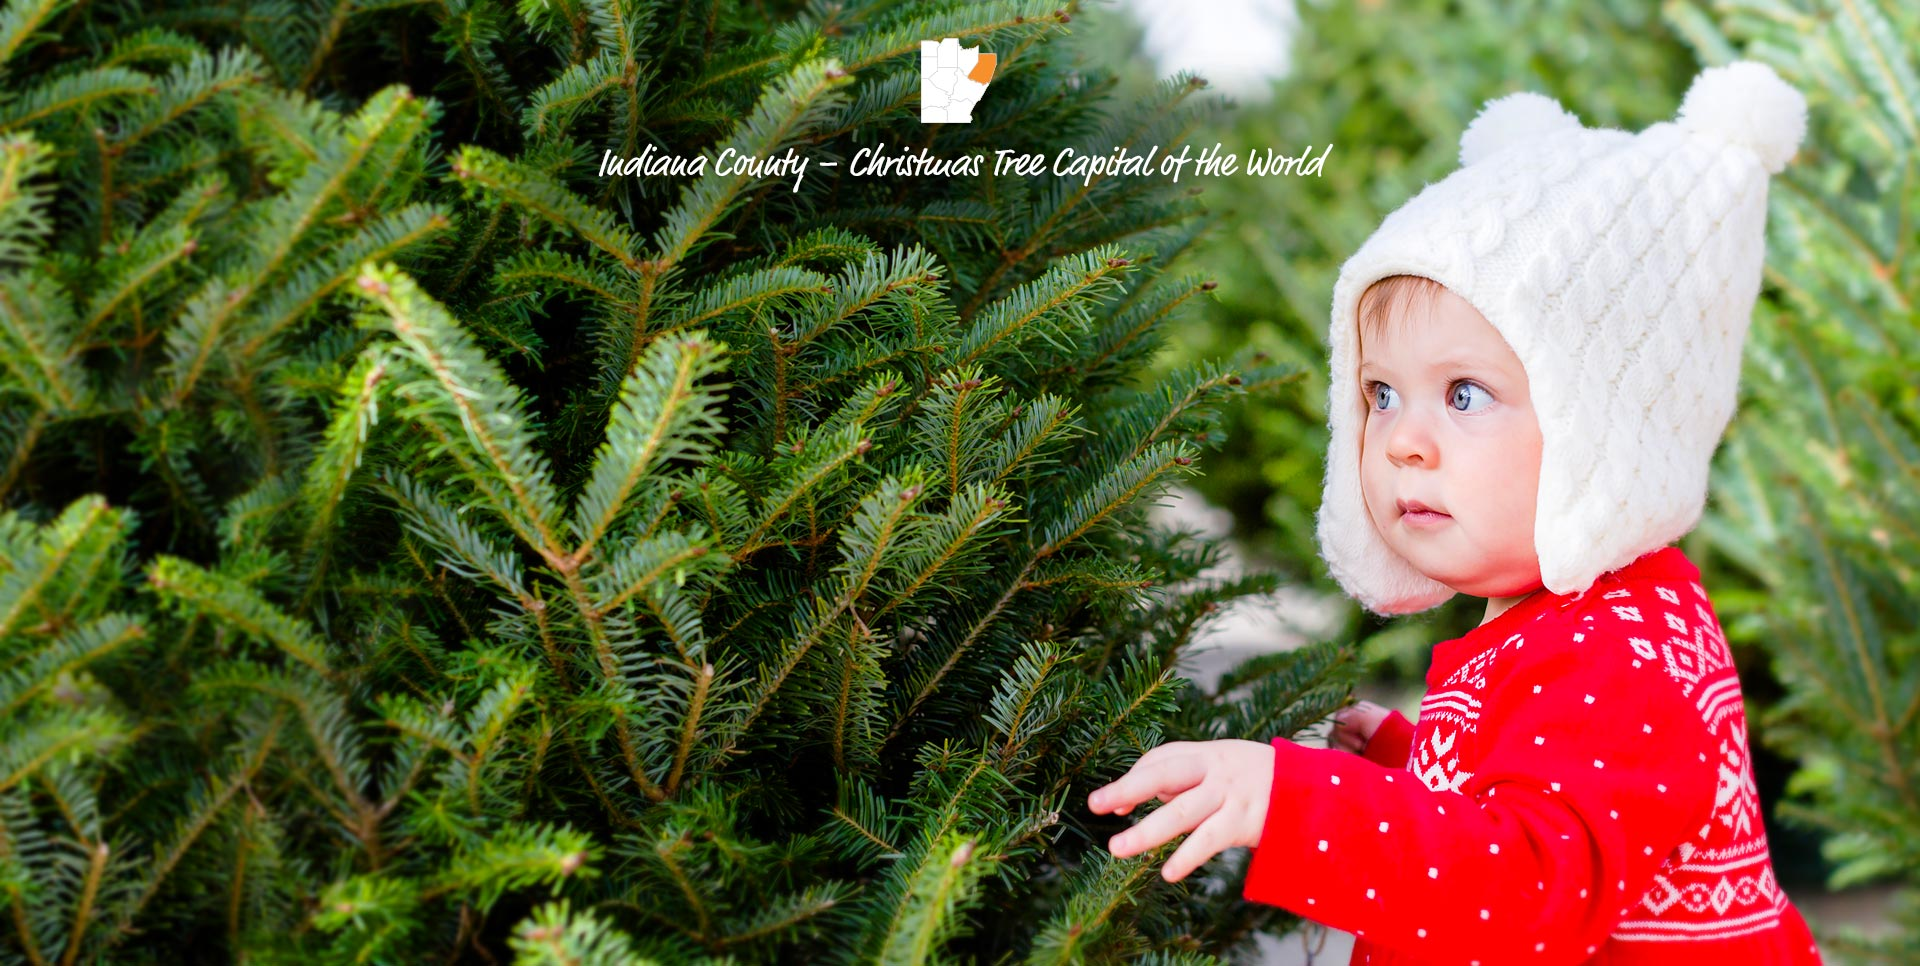 Indiana County – Christmas Tree Capital of the World